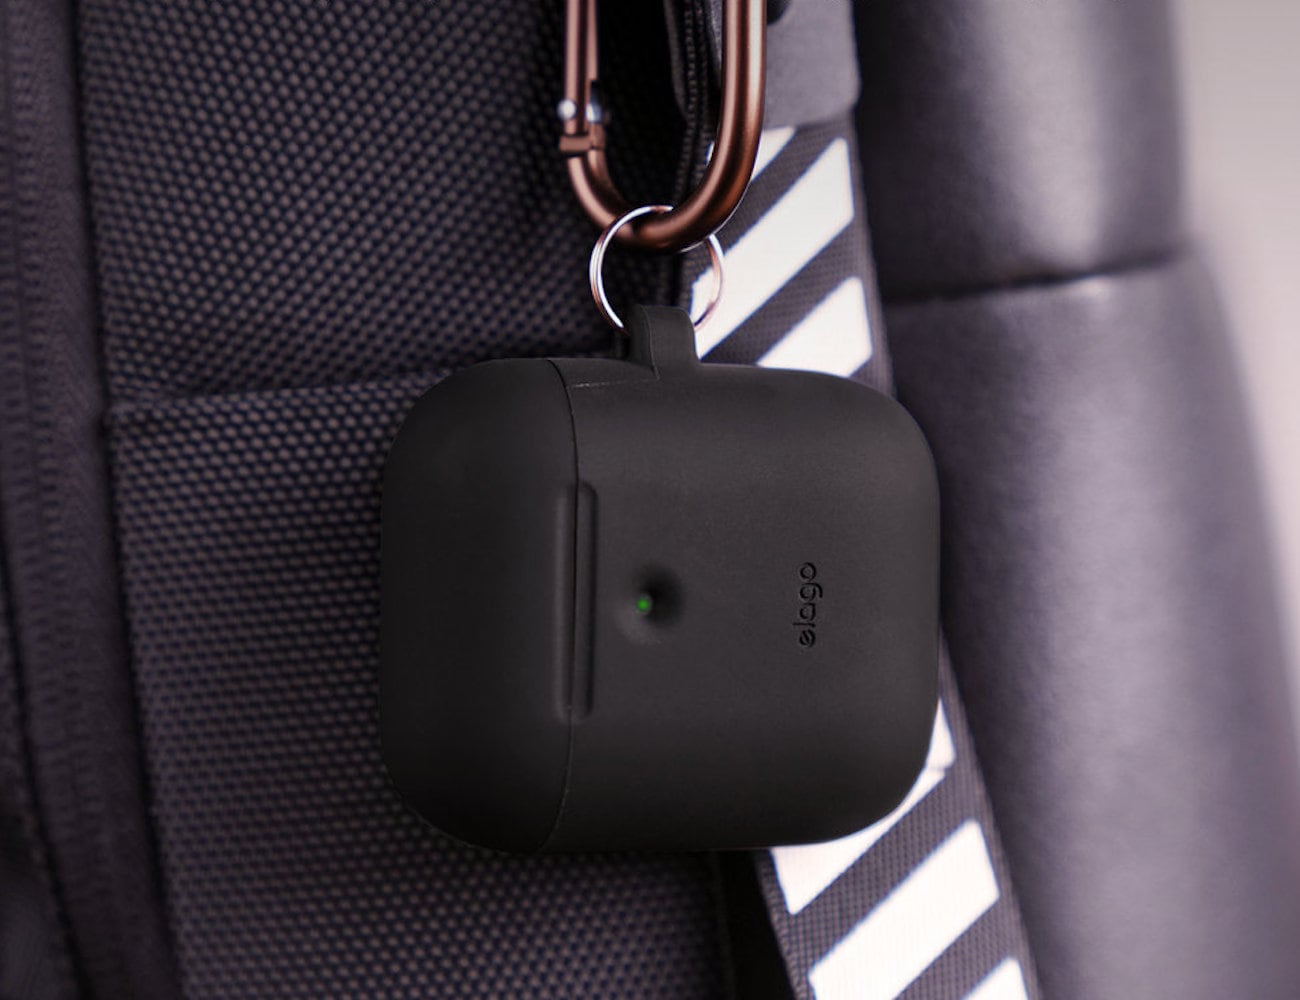 Elago A2 Hang Case Wireless AirPods Charging Case protects your earbuds from dust and moisture